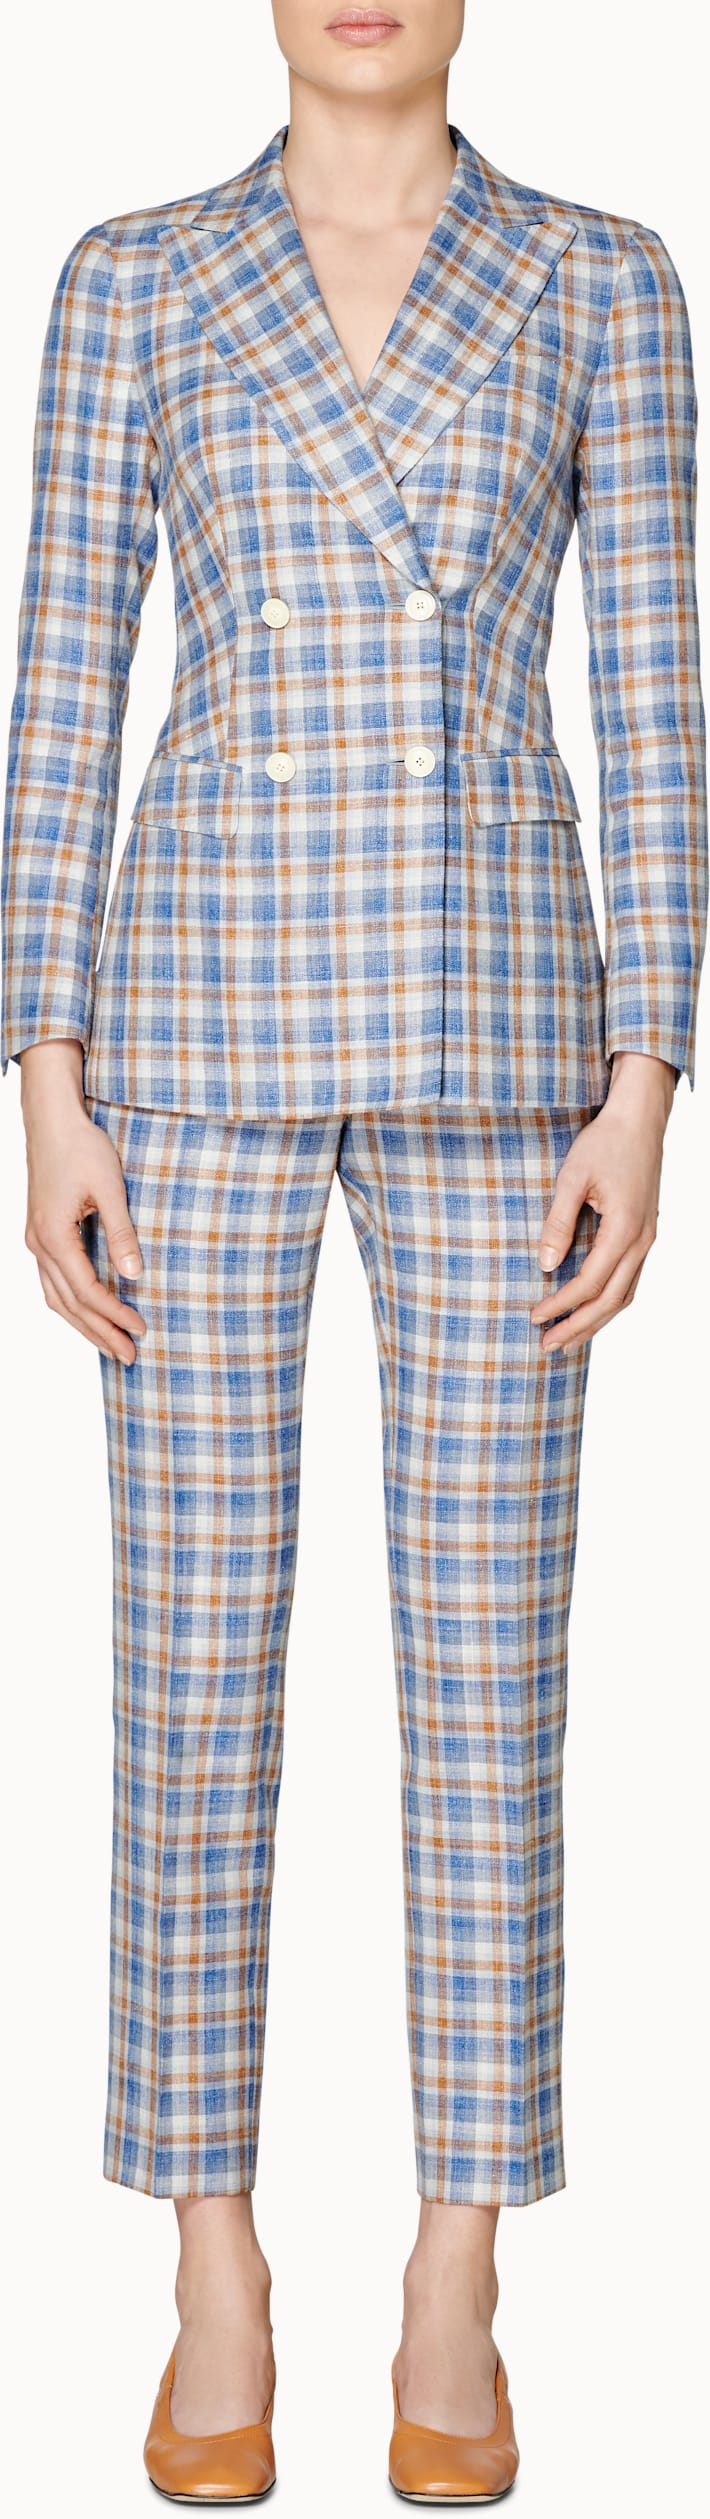 Cameron Blue & Cognac Checked Suit